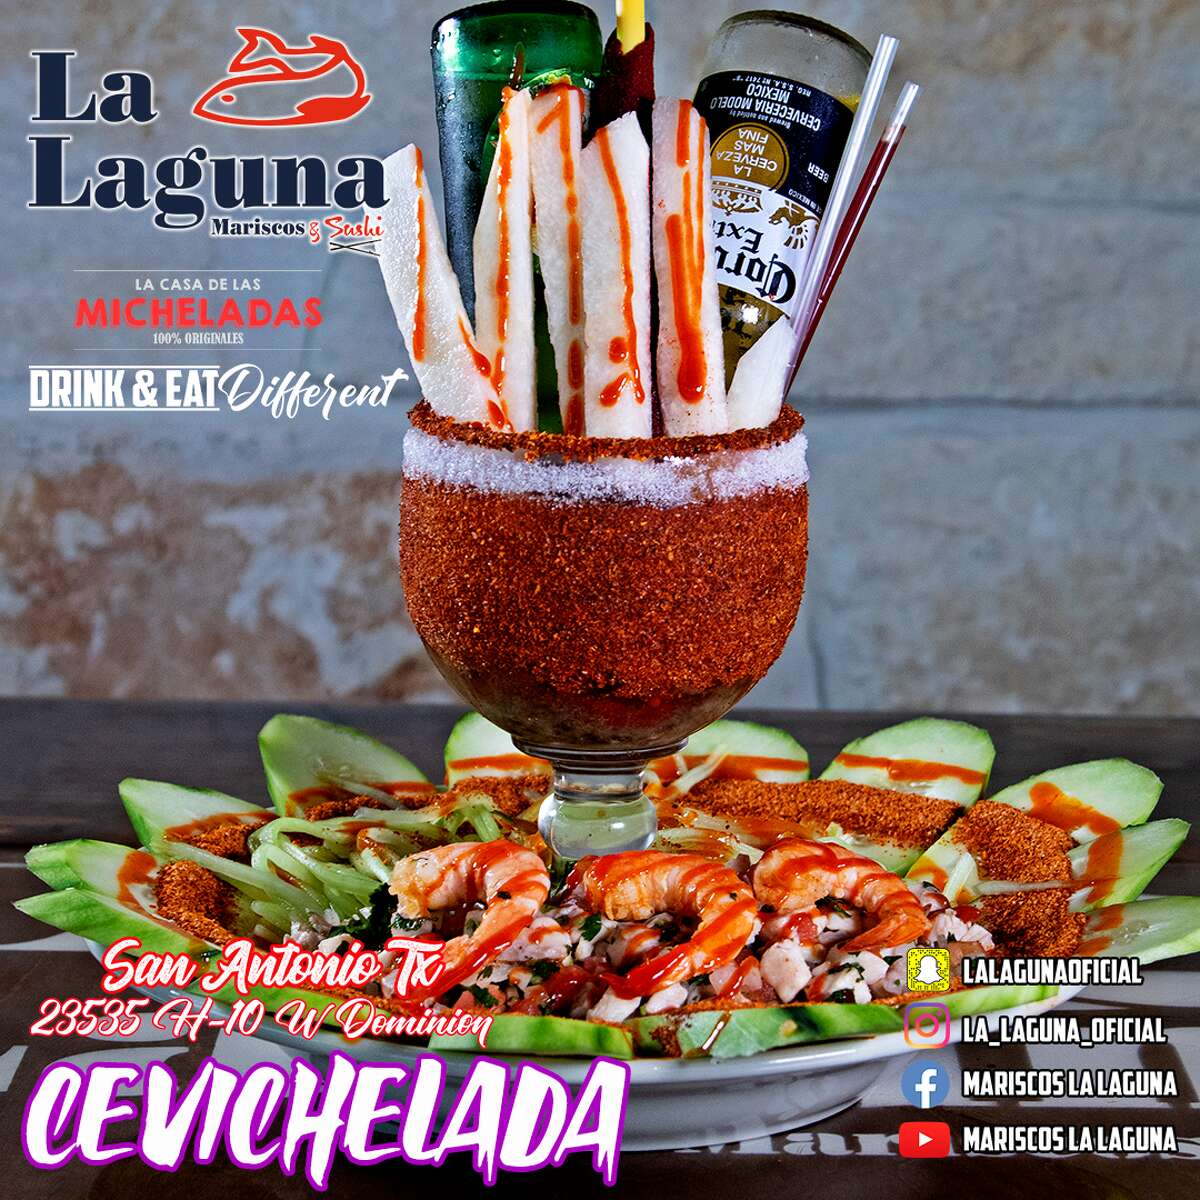 The extravagant micheladas are topped with a variety of items such as shrimp, stuffed celery and ceviche. According to its website, the prices for a michelada range from $8 to $40. The forty-dollar drink is a three-tier michelada that is meant to be shared with others.